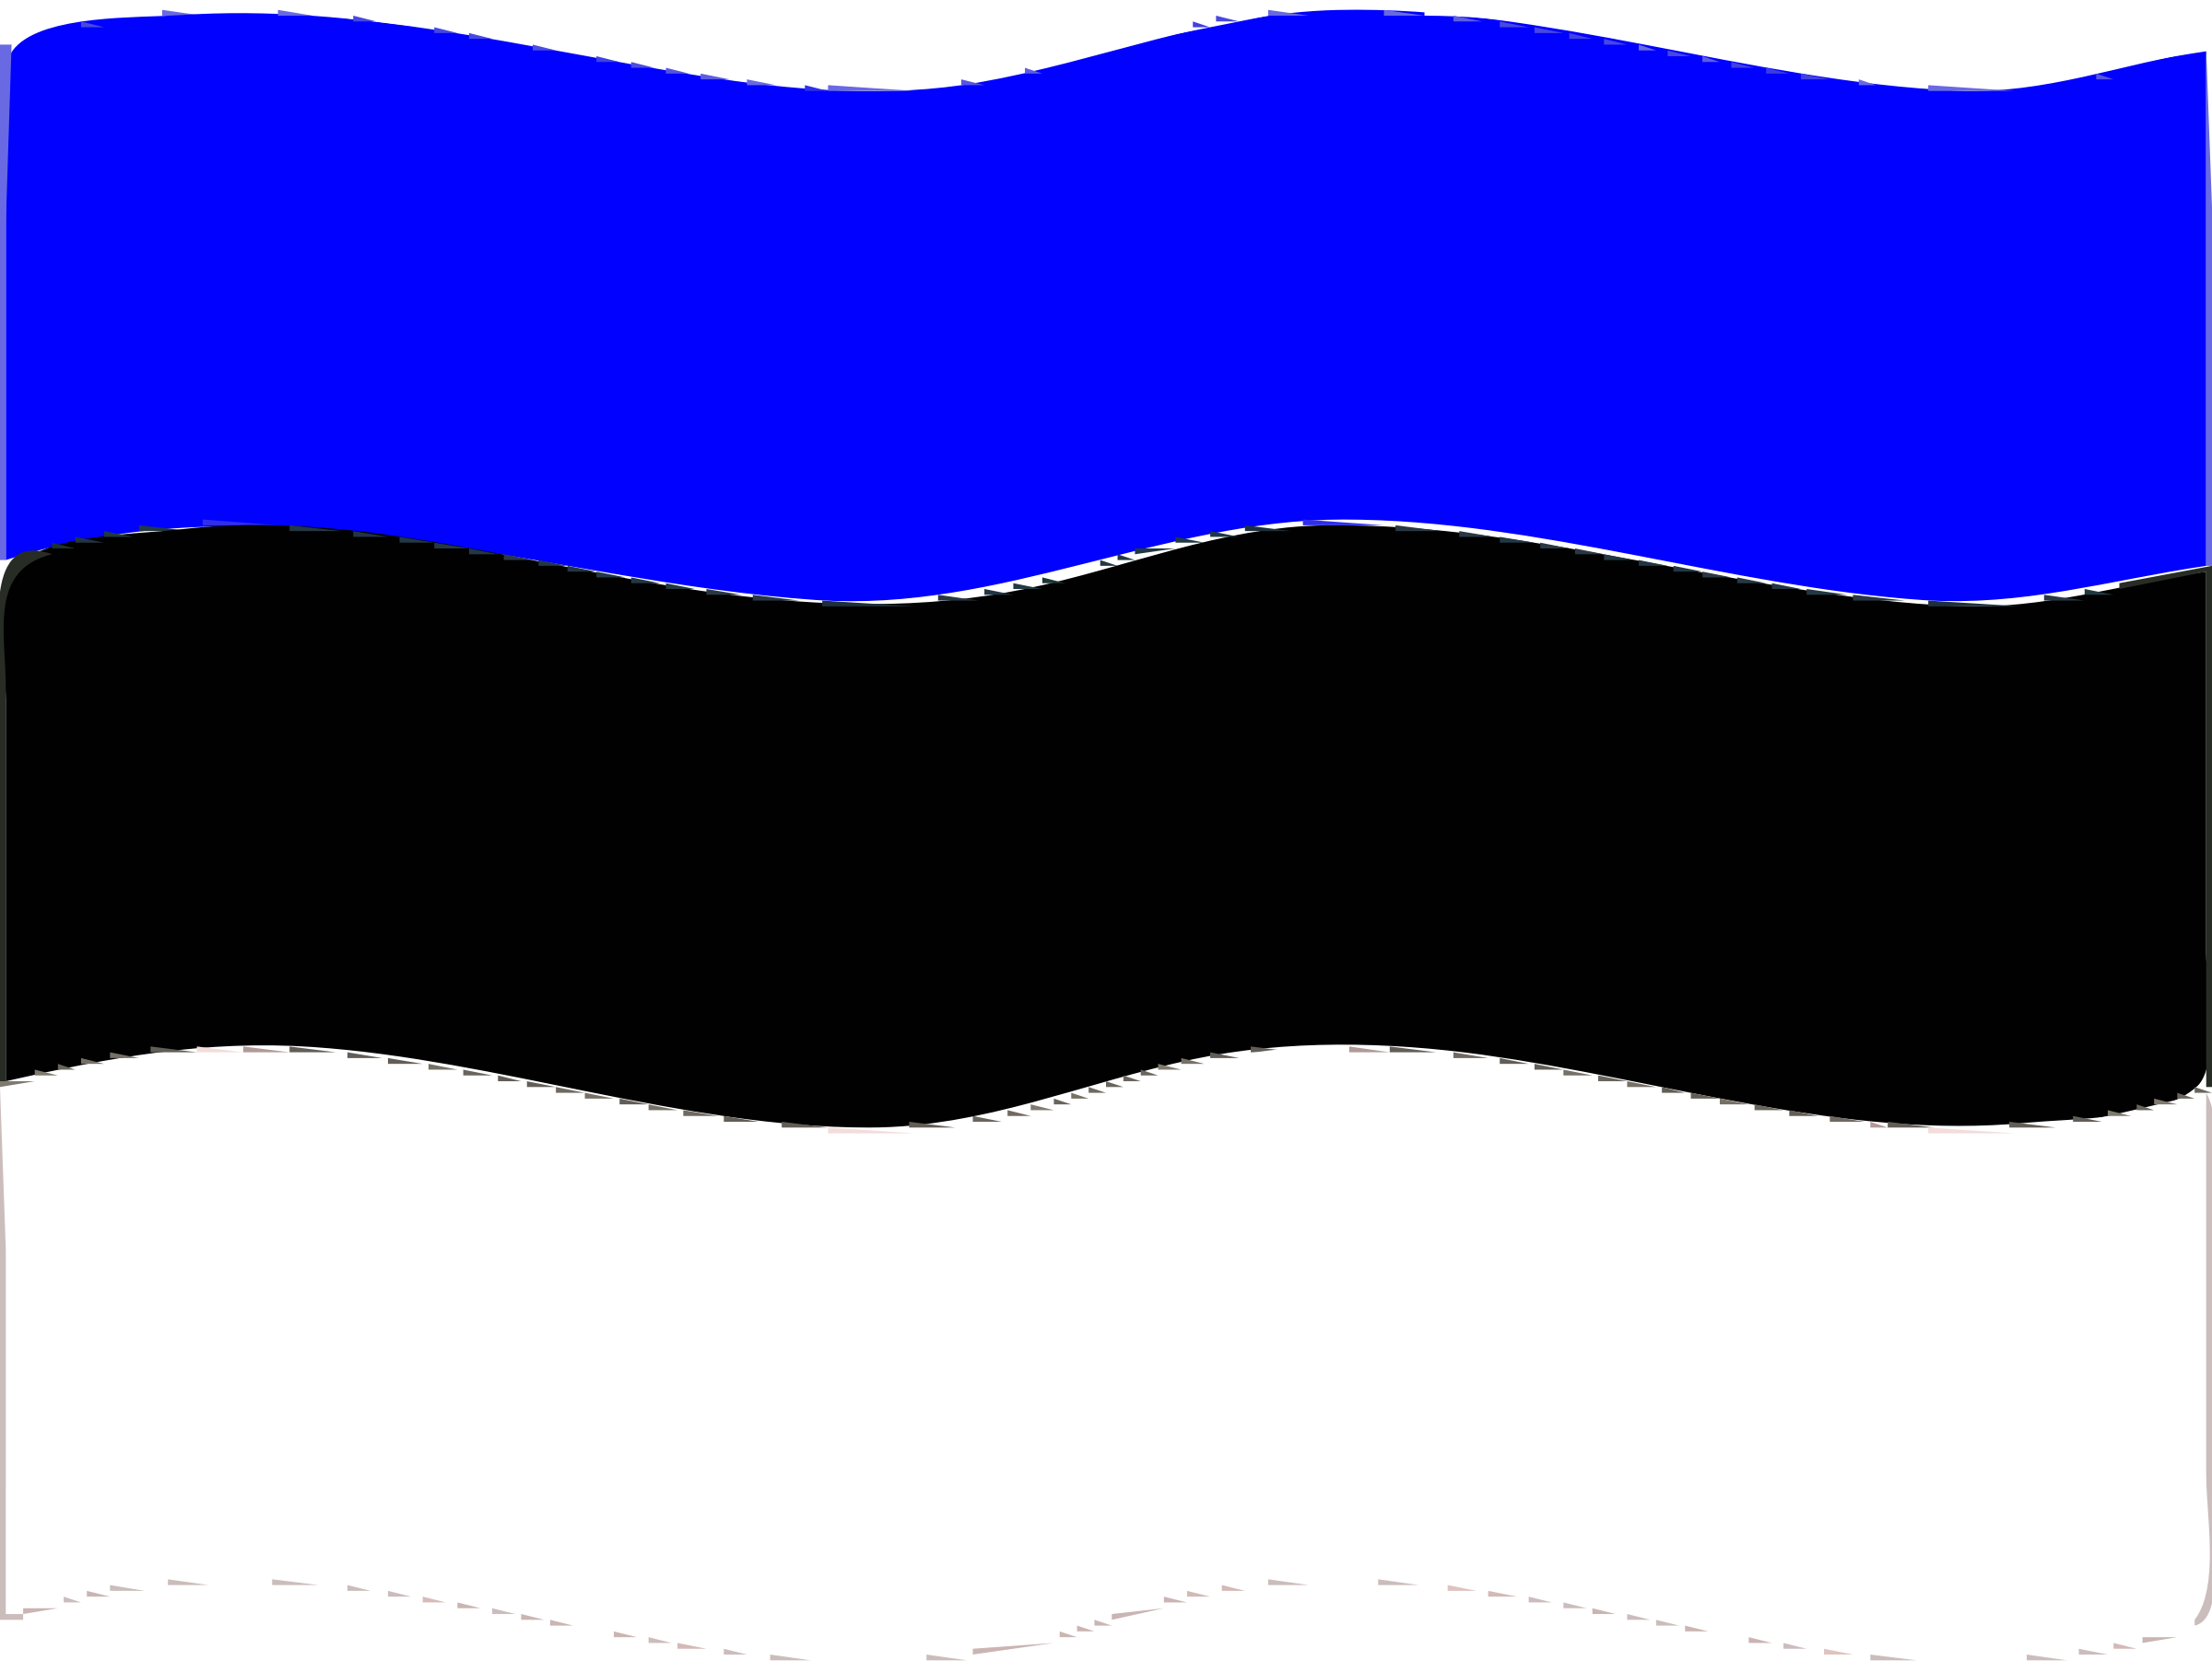 Flag of Estonia wave by Joesph